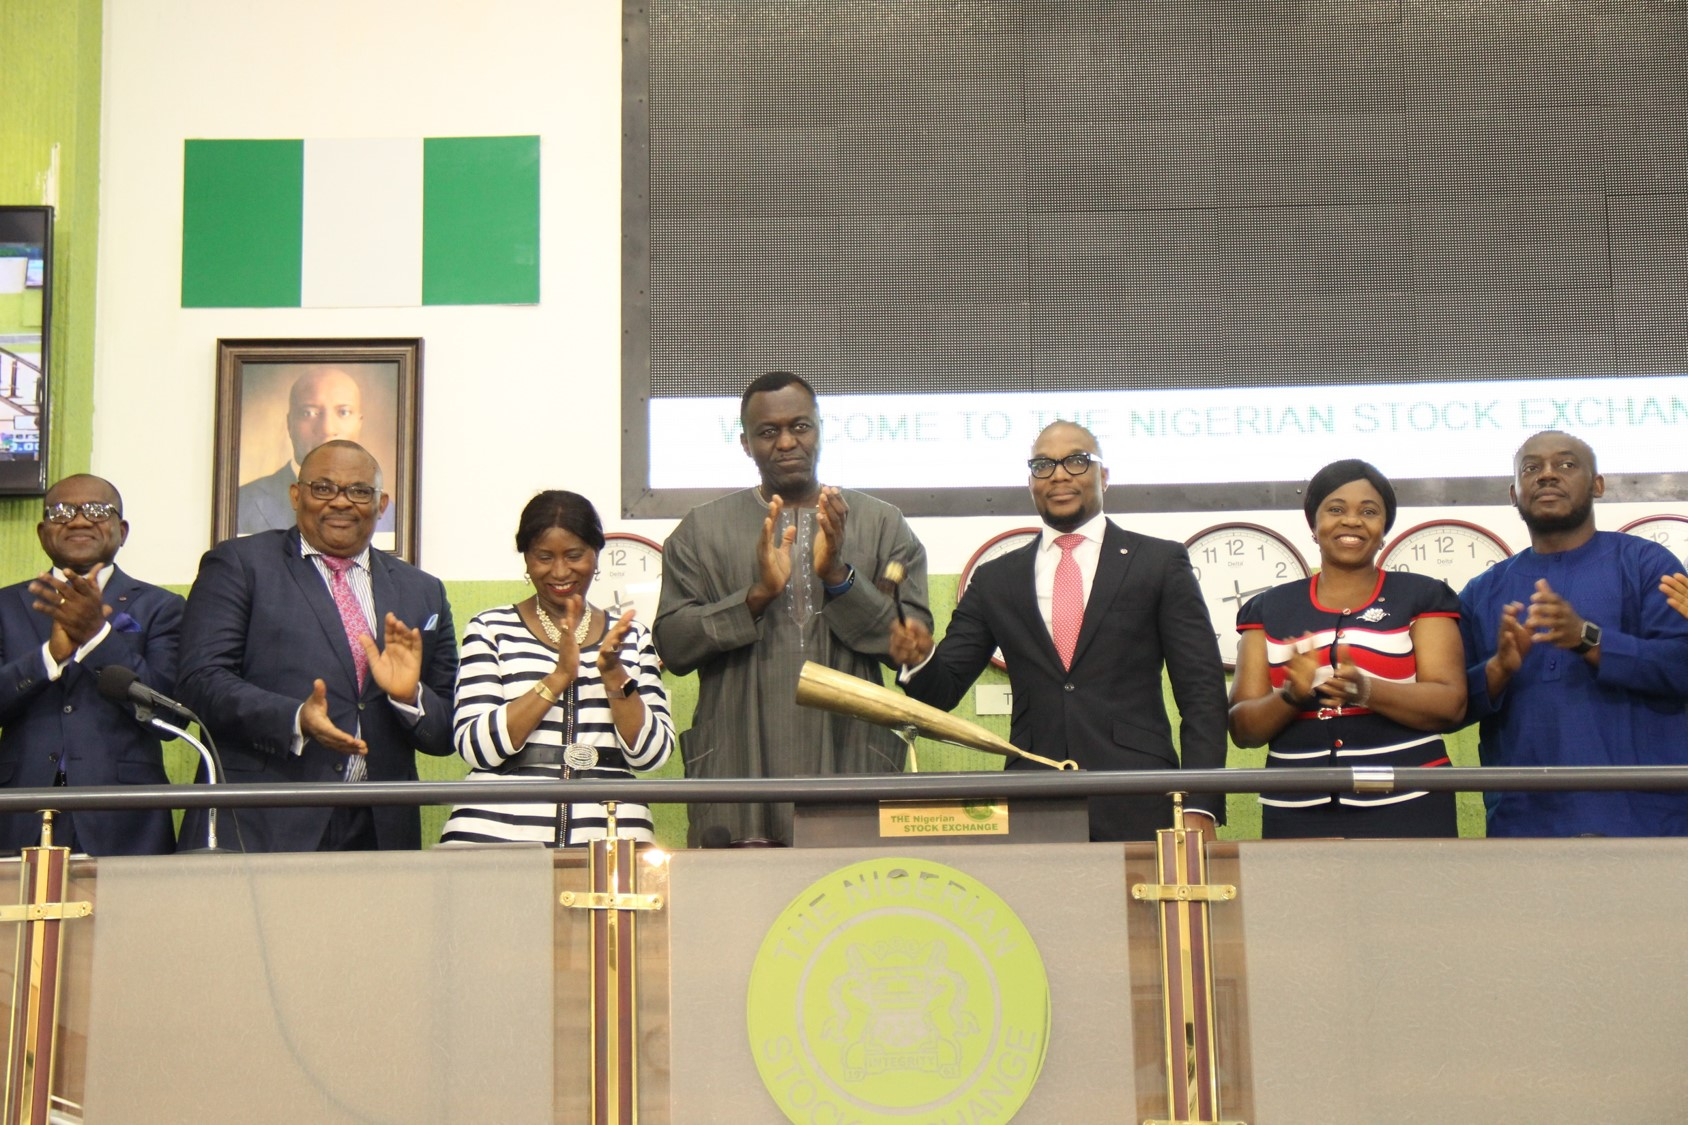 Photo News: New African Prudential CEO Visits NGSE, Sounds Closing Gong